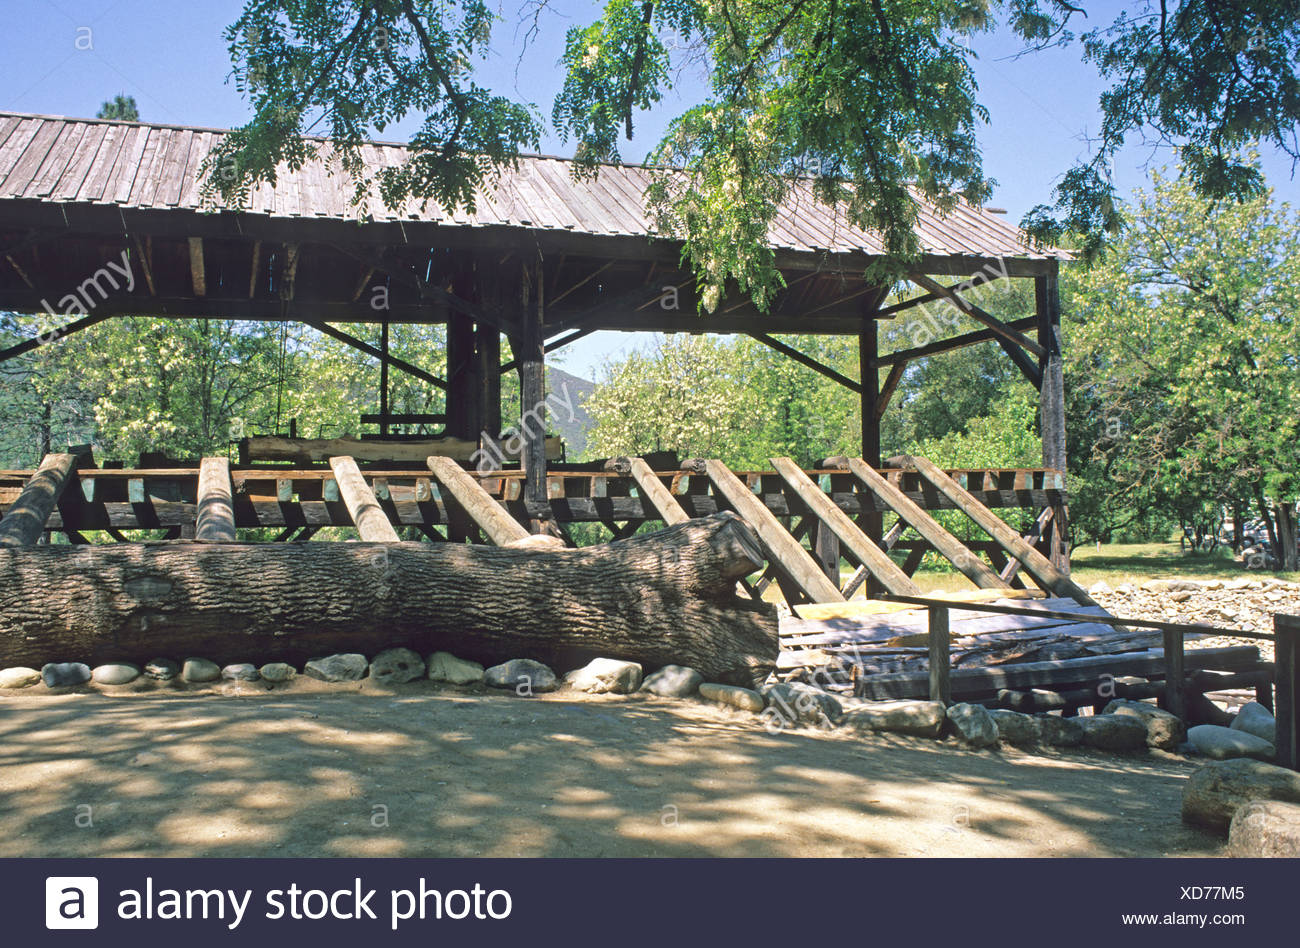 Reconstructed Sutters mill at Marshall Gold Discovery Site Coloma California - Stock Image